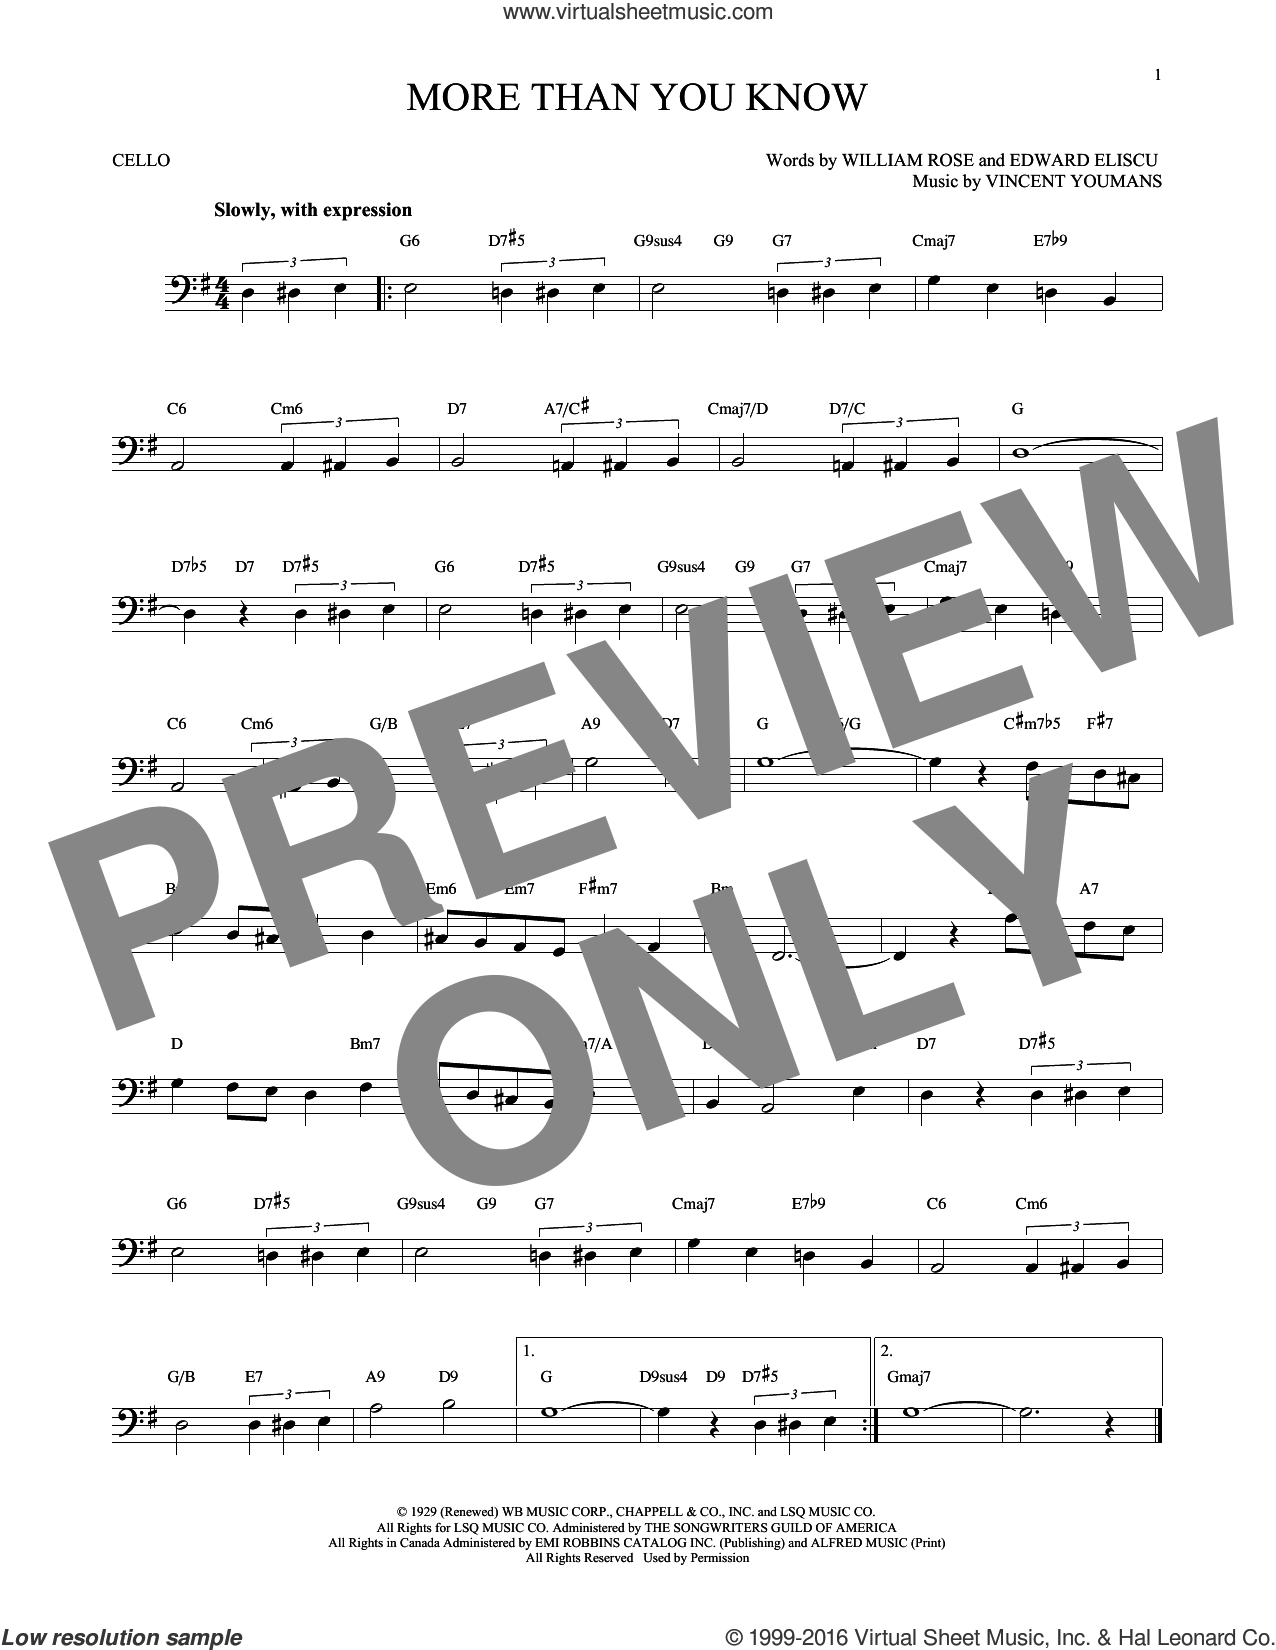 More Than You Know sheet music for cello solo by Edward Eliscu, Vincent Youmans and William Rose. Score Image Preview.